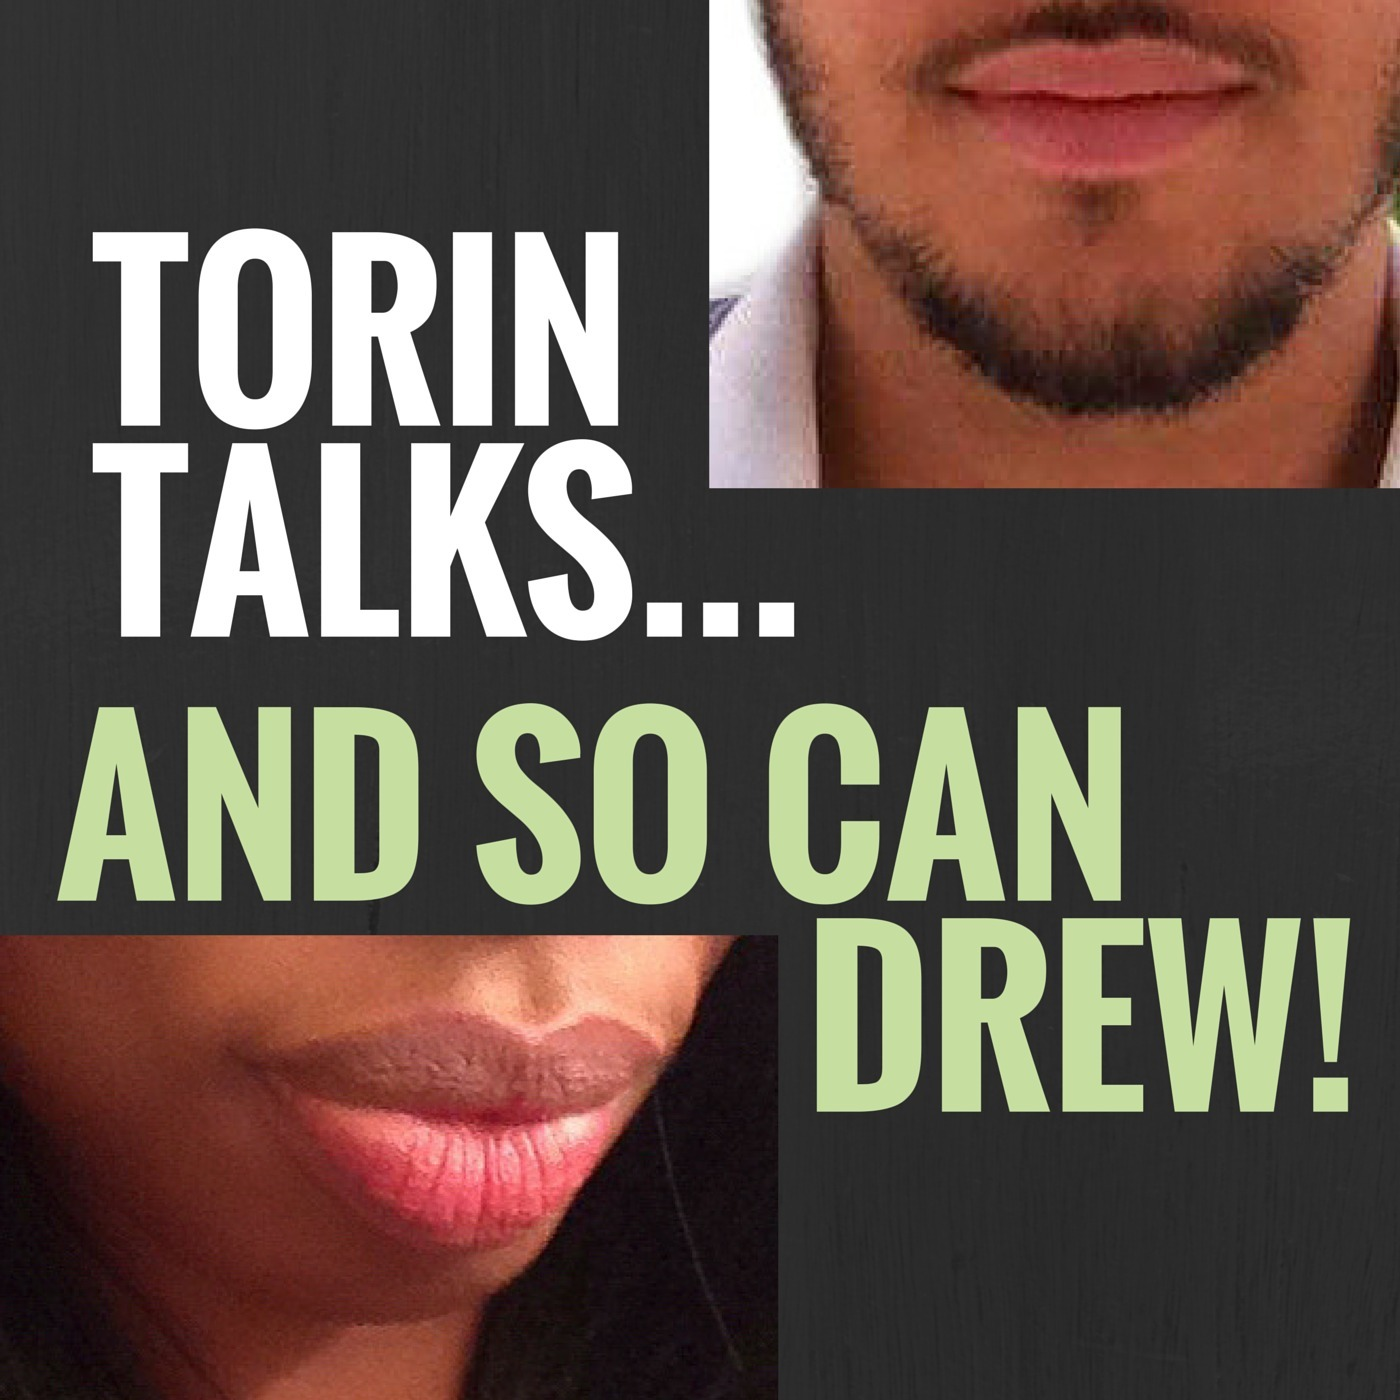 Torin Talks...and so can Drew!